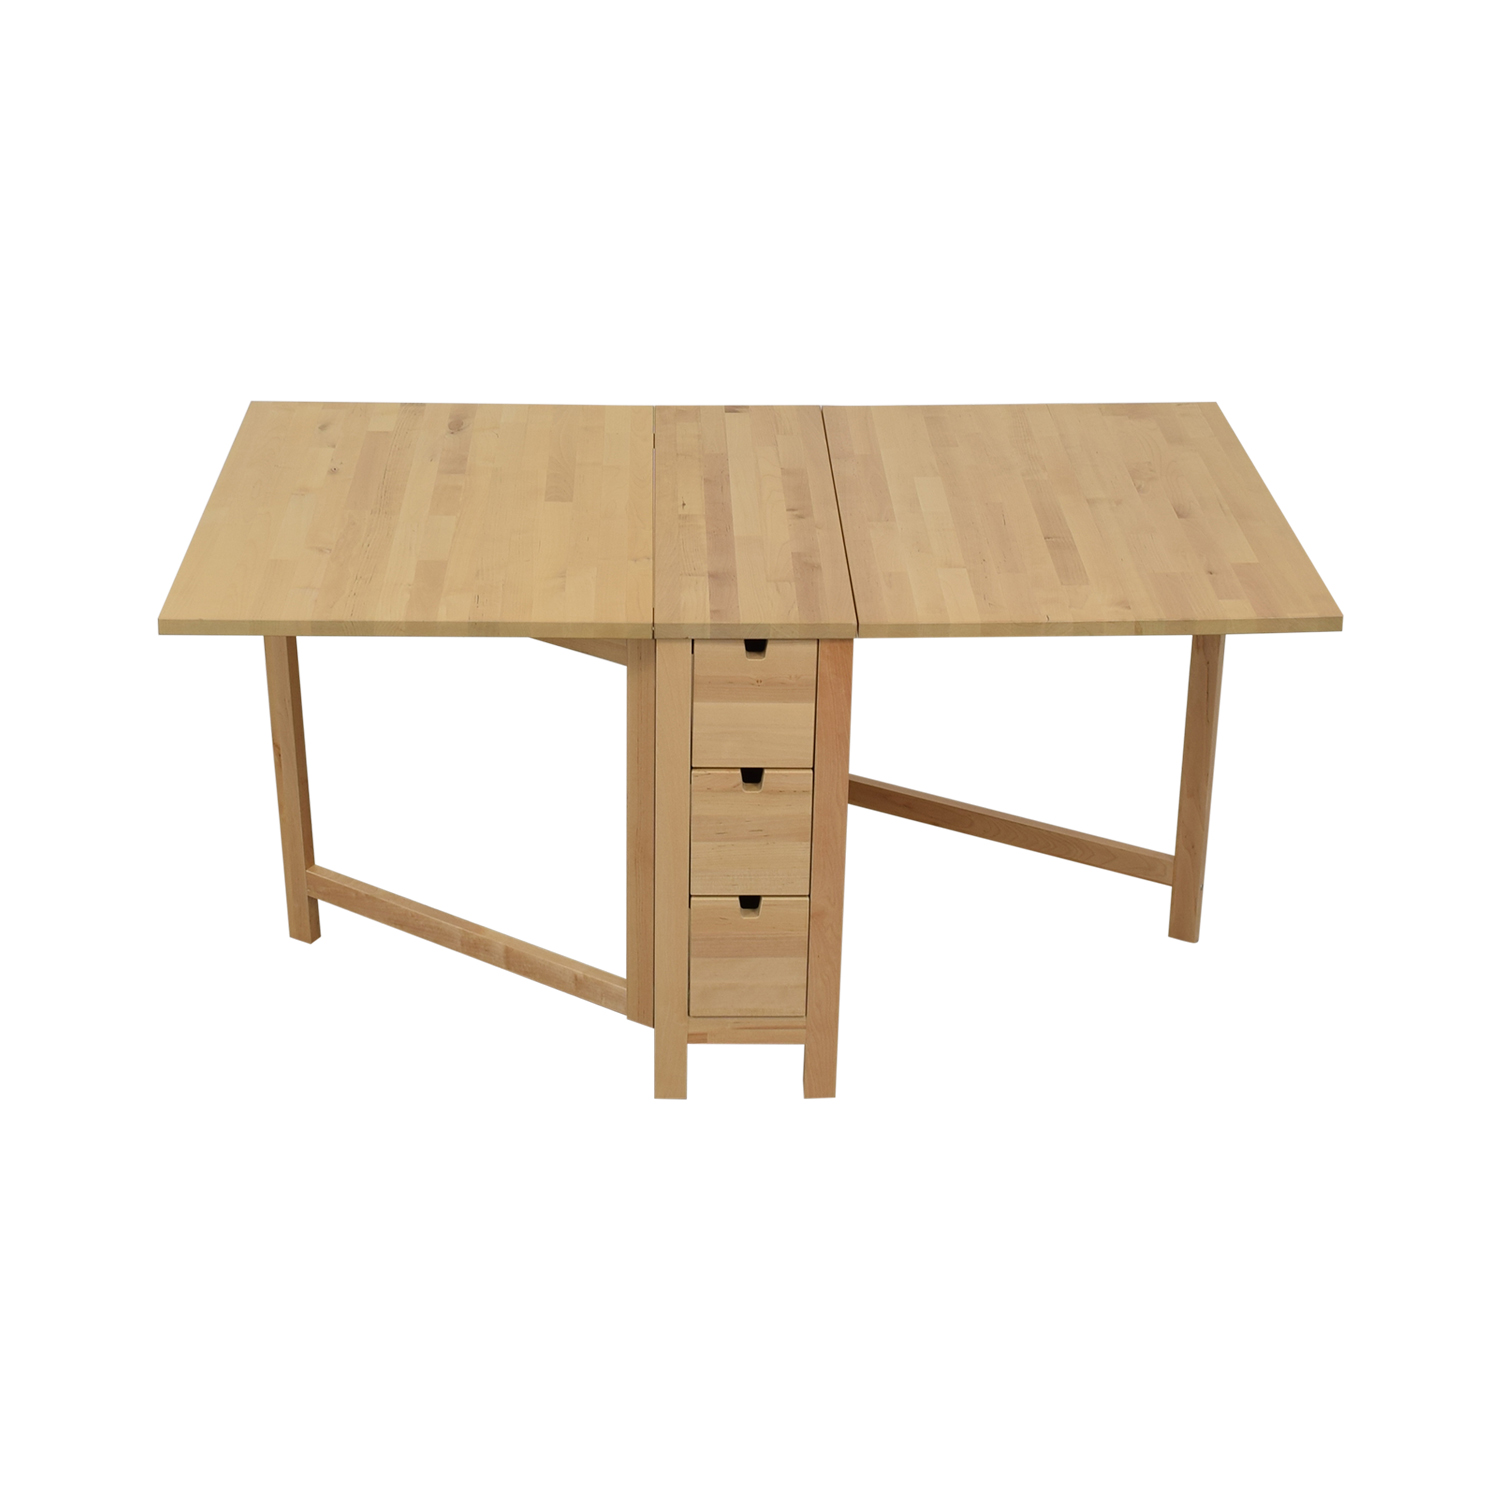 IKEA IKEA Norden Gateleg Folding Table with Storage Drawers second hand